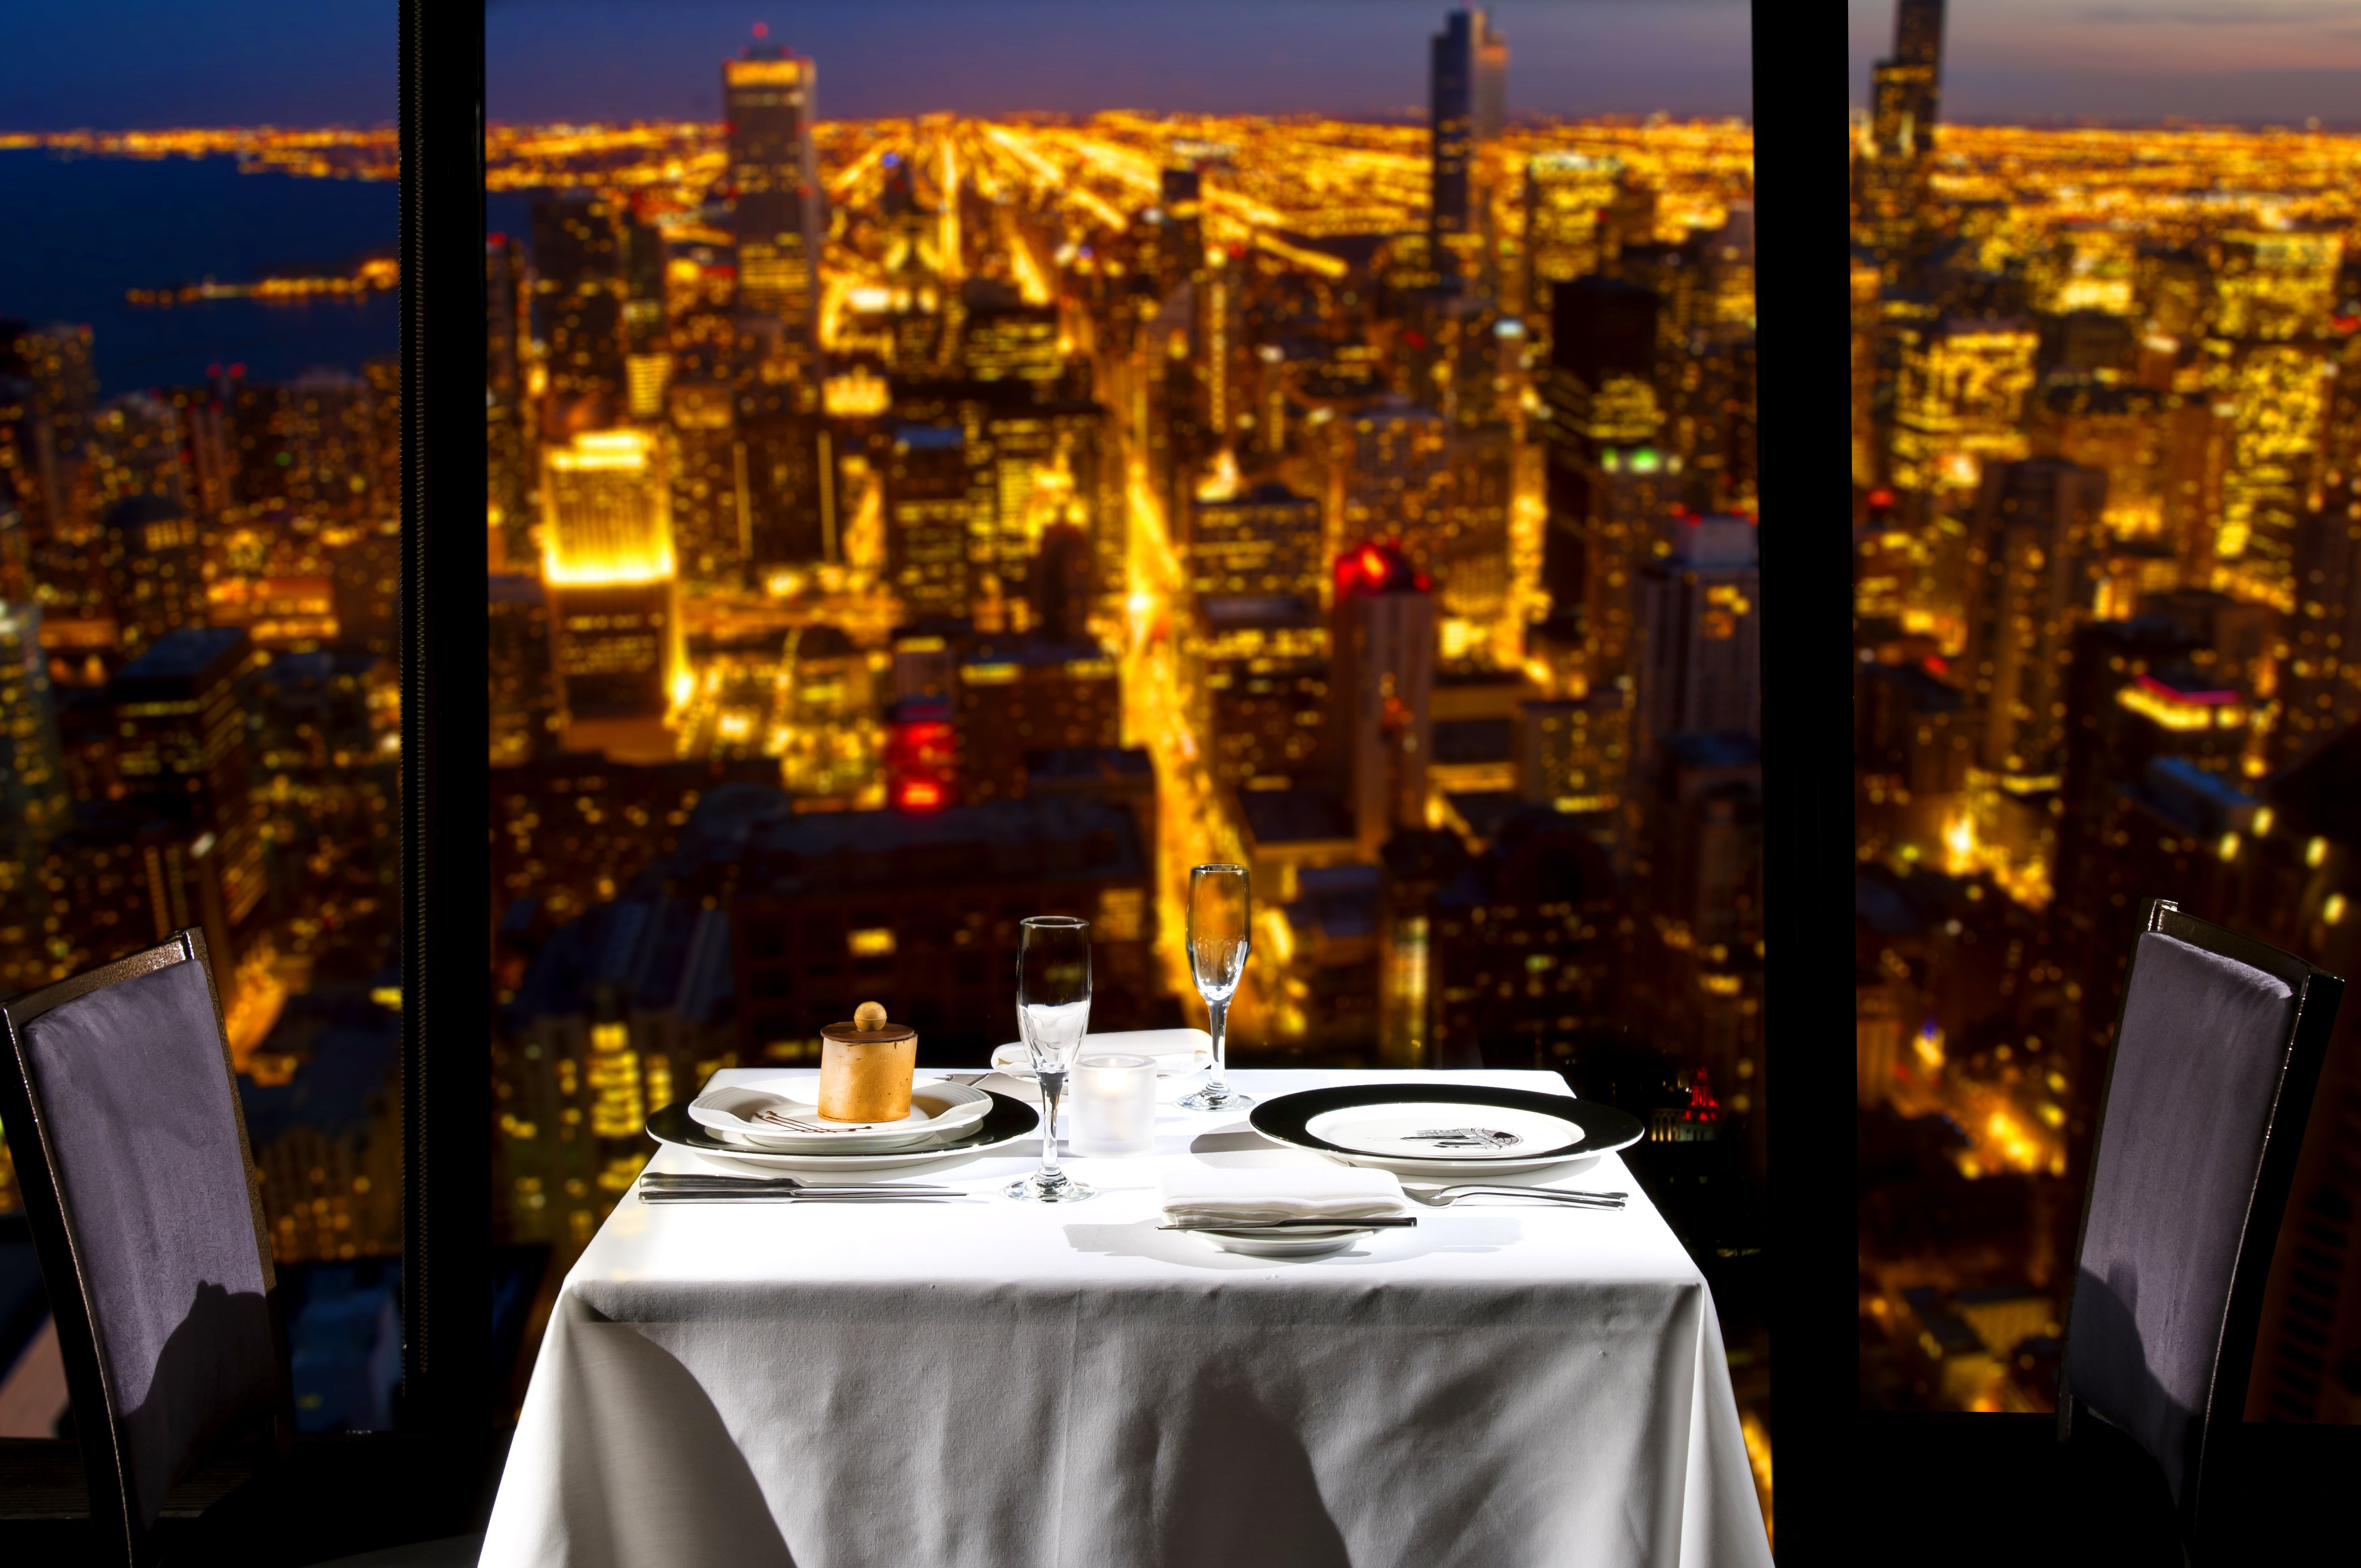 The Most Romantic Restaurants In The Us